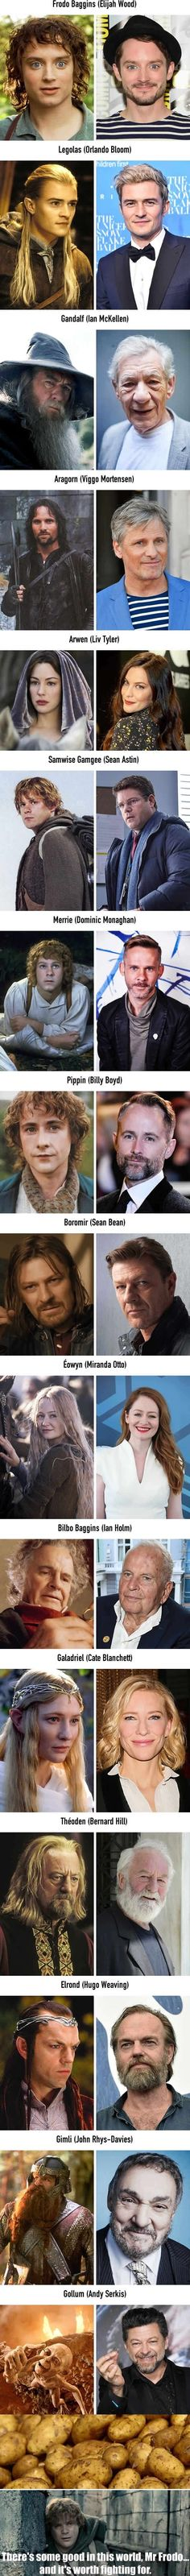 The Lord of the Rings 15 years later